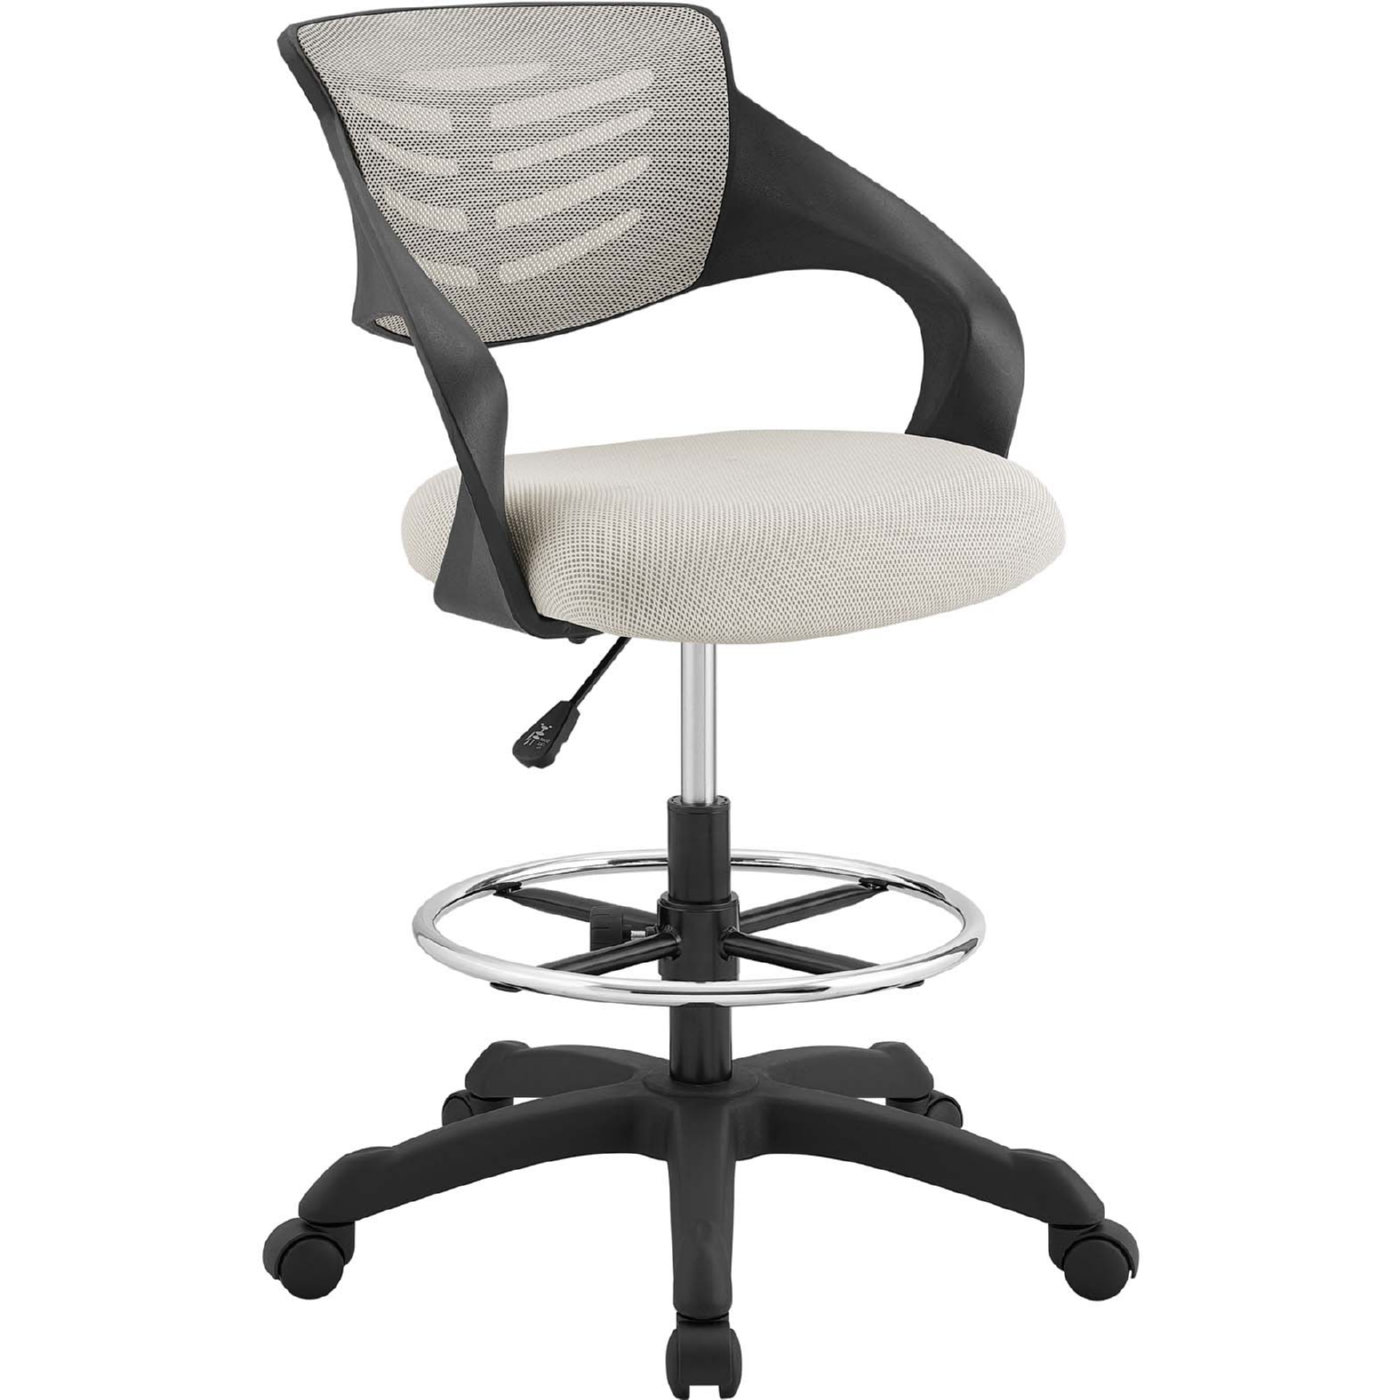 Thrive Drafting Chair in Gray Mesh by Modway